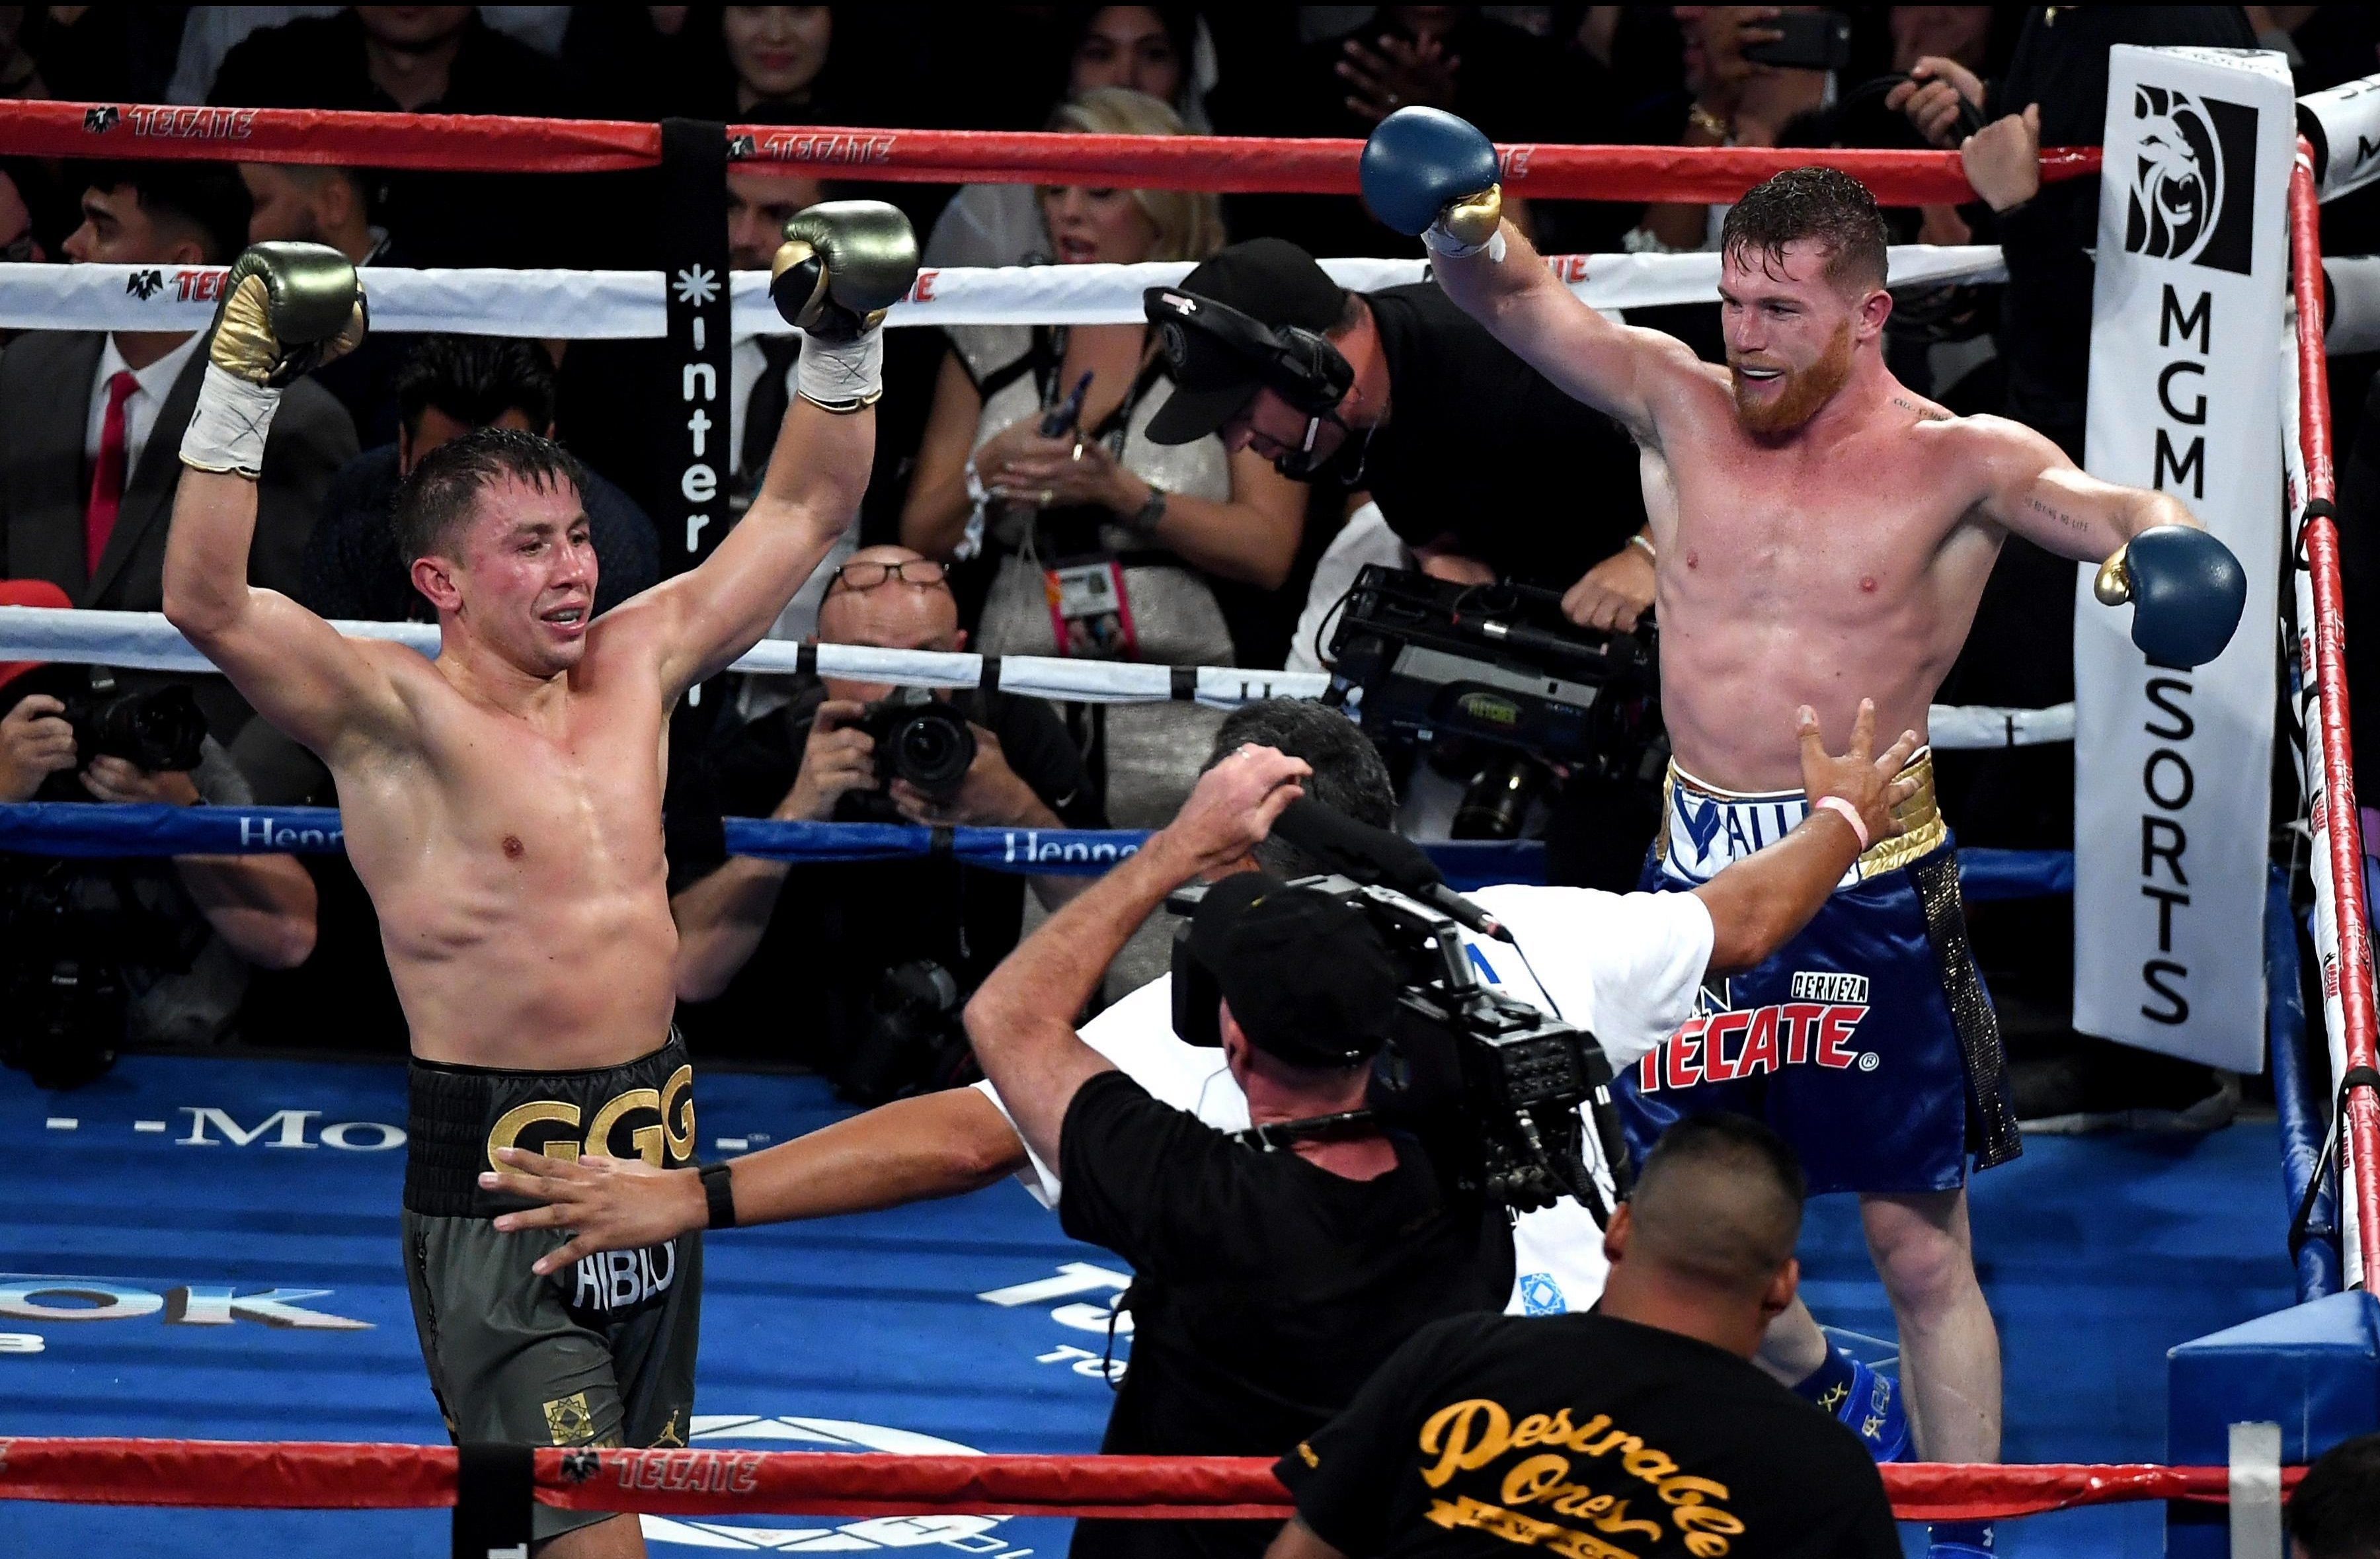 Saul Alvarez and Gennady Golovkin both thought they had won the first time they met